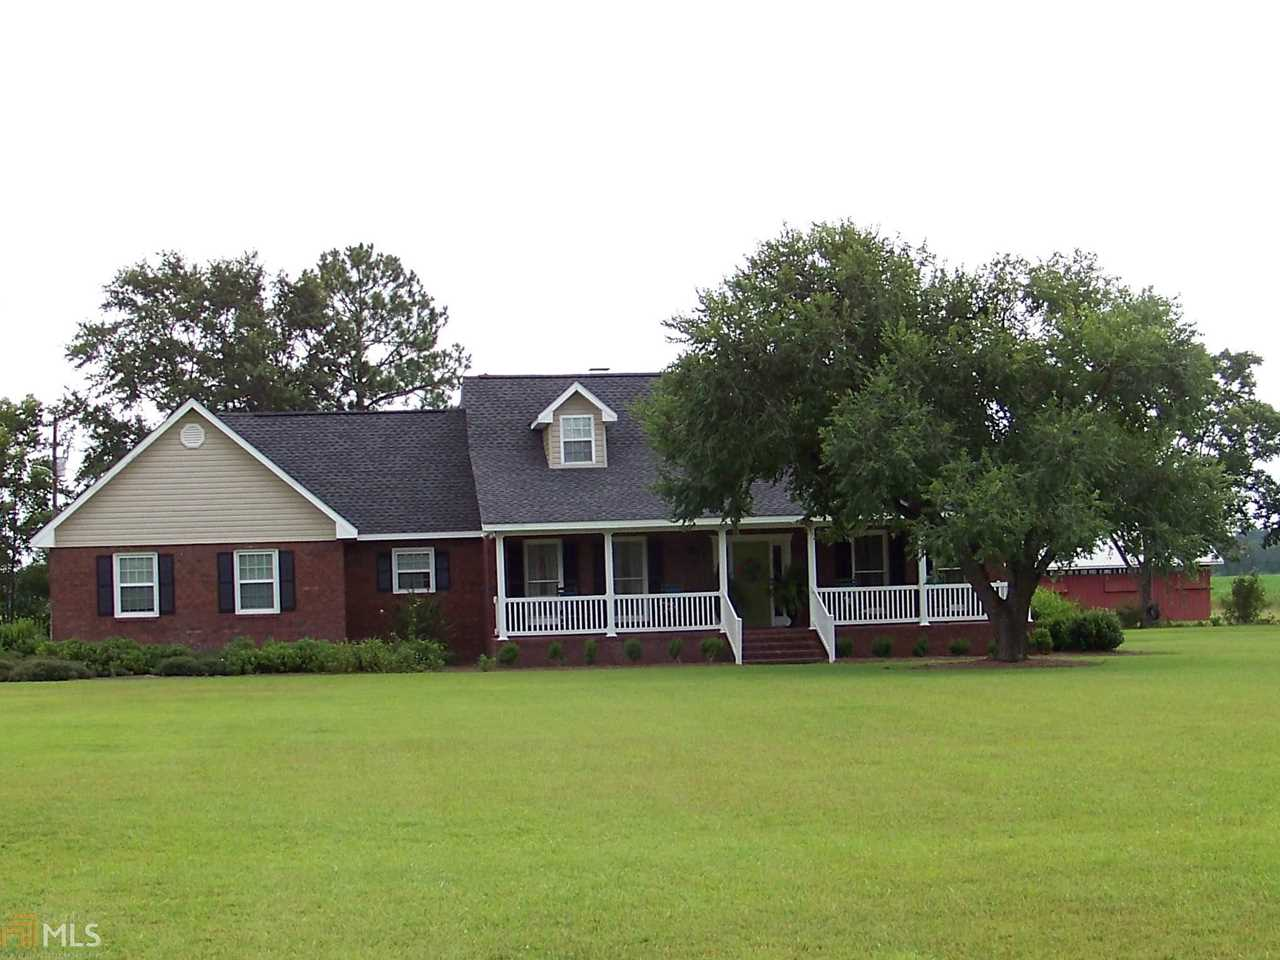 5715 Ralston Rd Patterson, GA 31557 | MLS 8422676 Photo 1